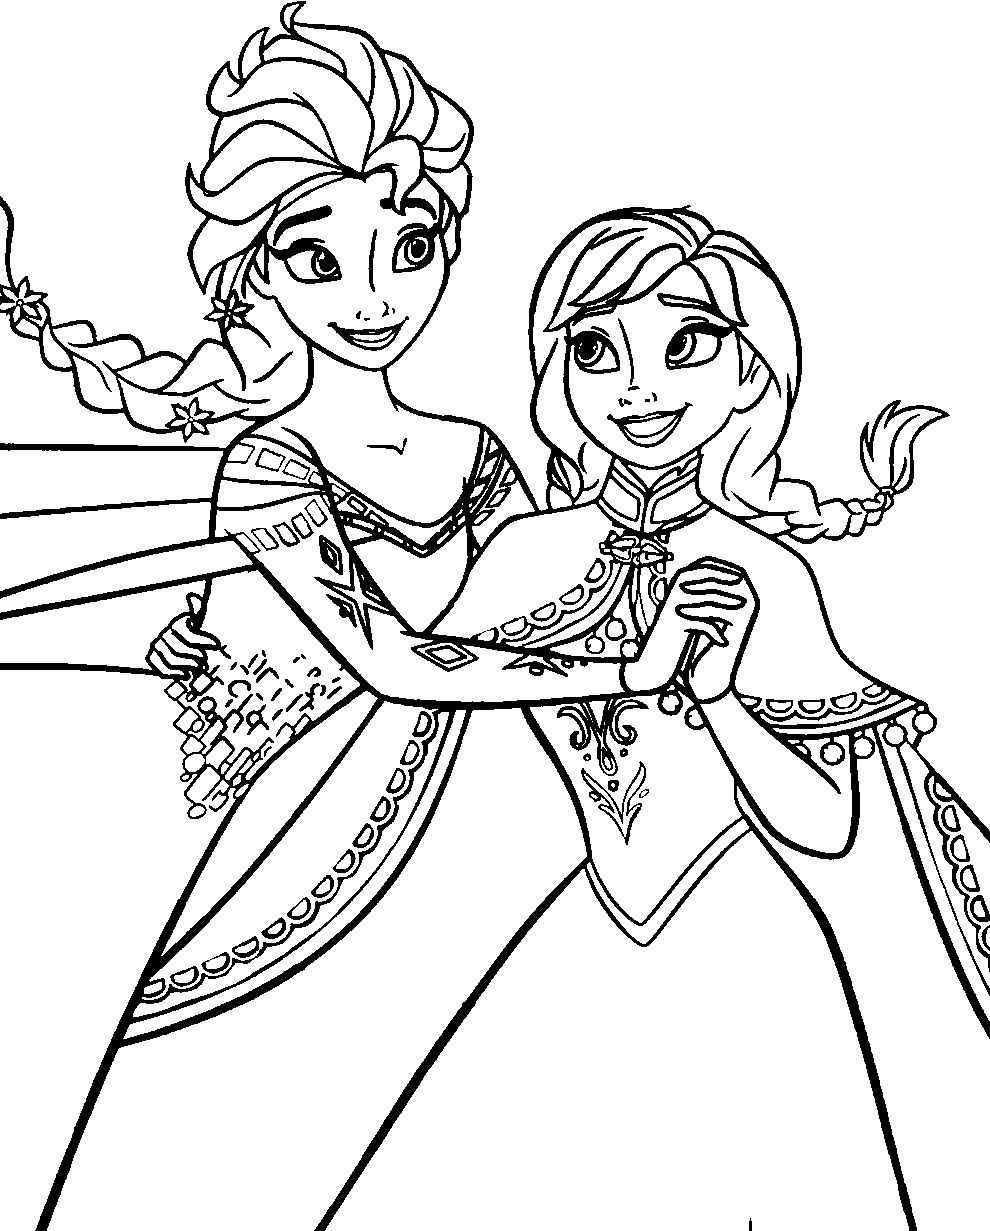 Frozen Elsa Coloring Pages Easy Coloring Pages Elsa Elsa Coloring Pages Disney Princess Coloring Pages Princess Coloring Pages